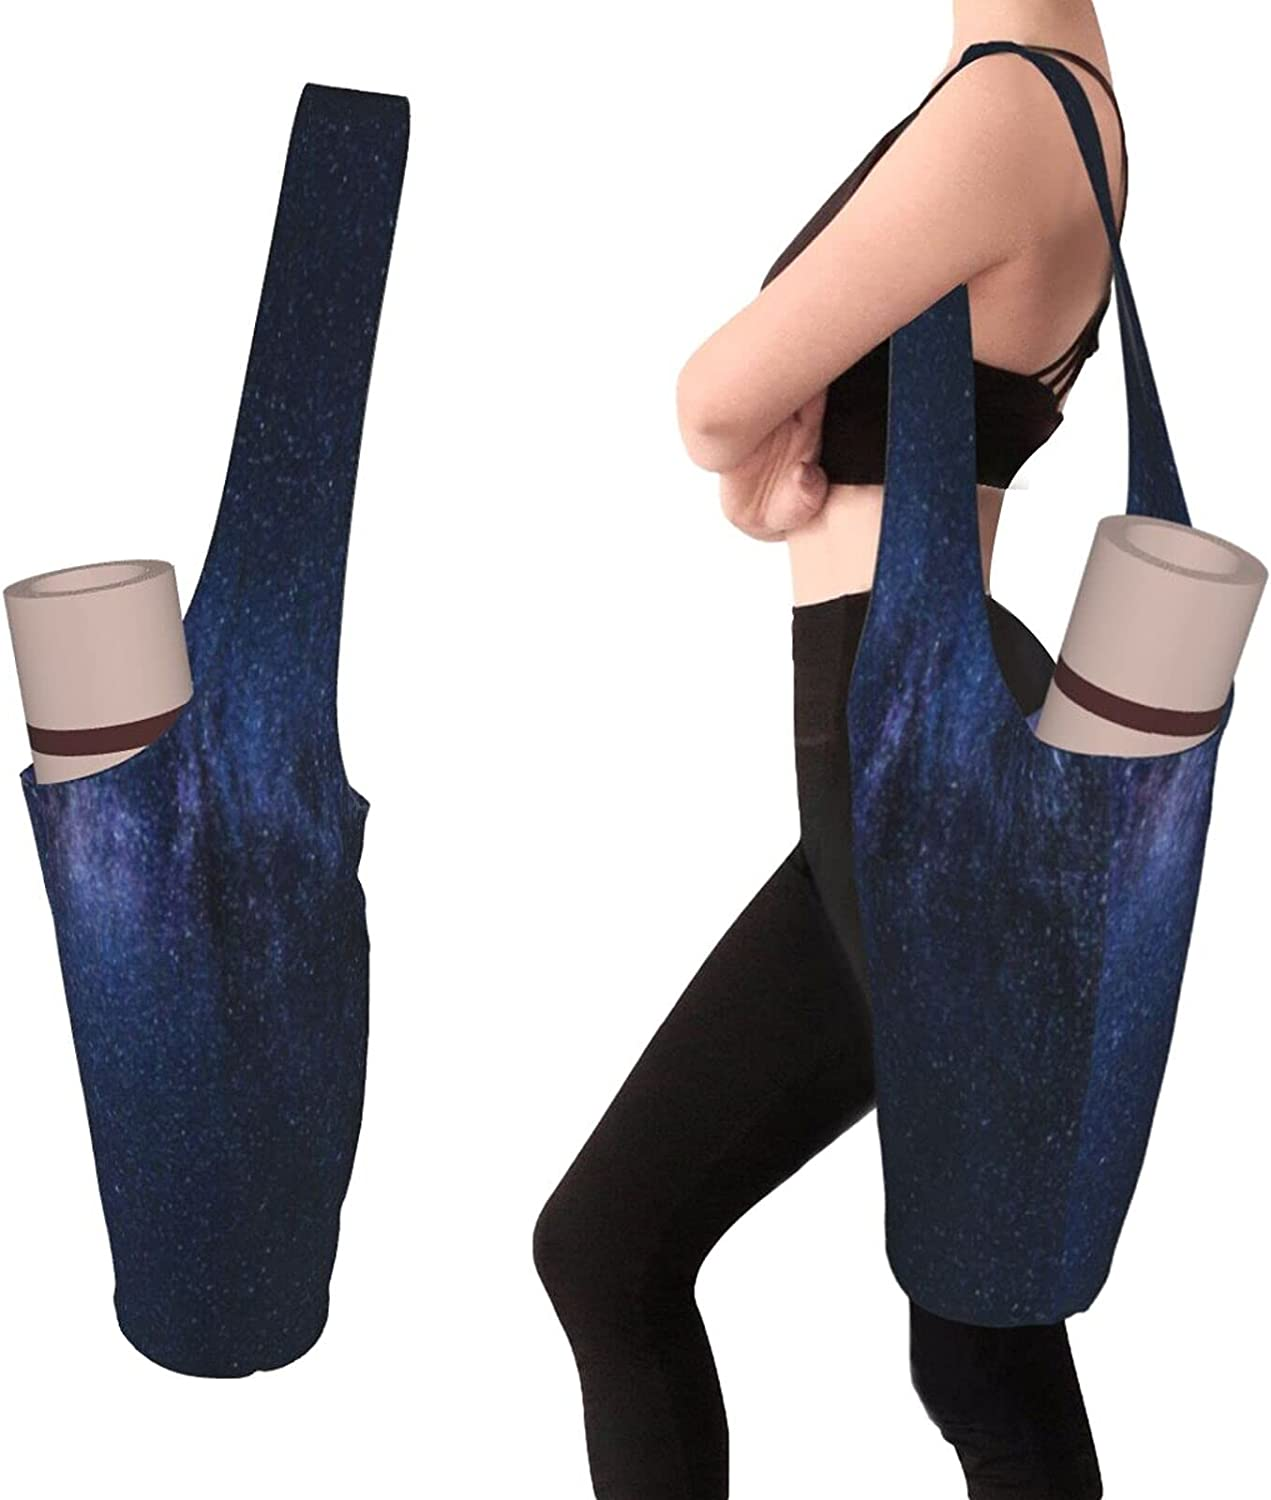 Max 71% OFF Yoga Mats Bag With Sale price Pockets Thick Size Men Access Large